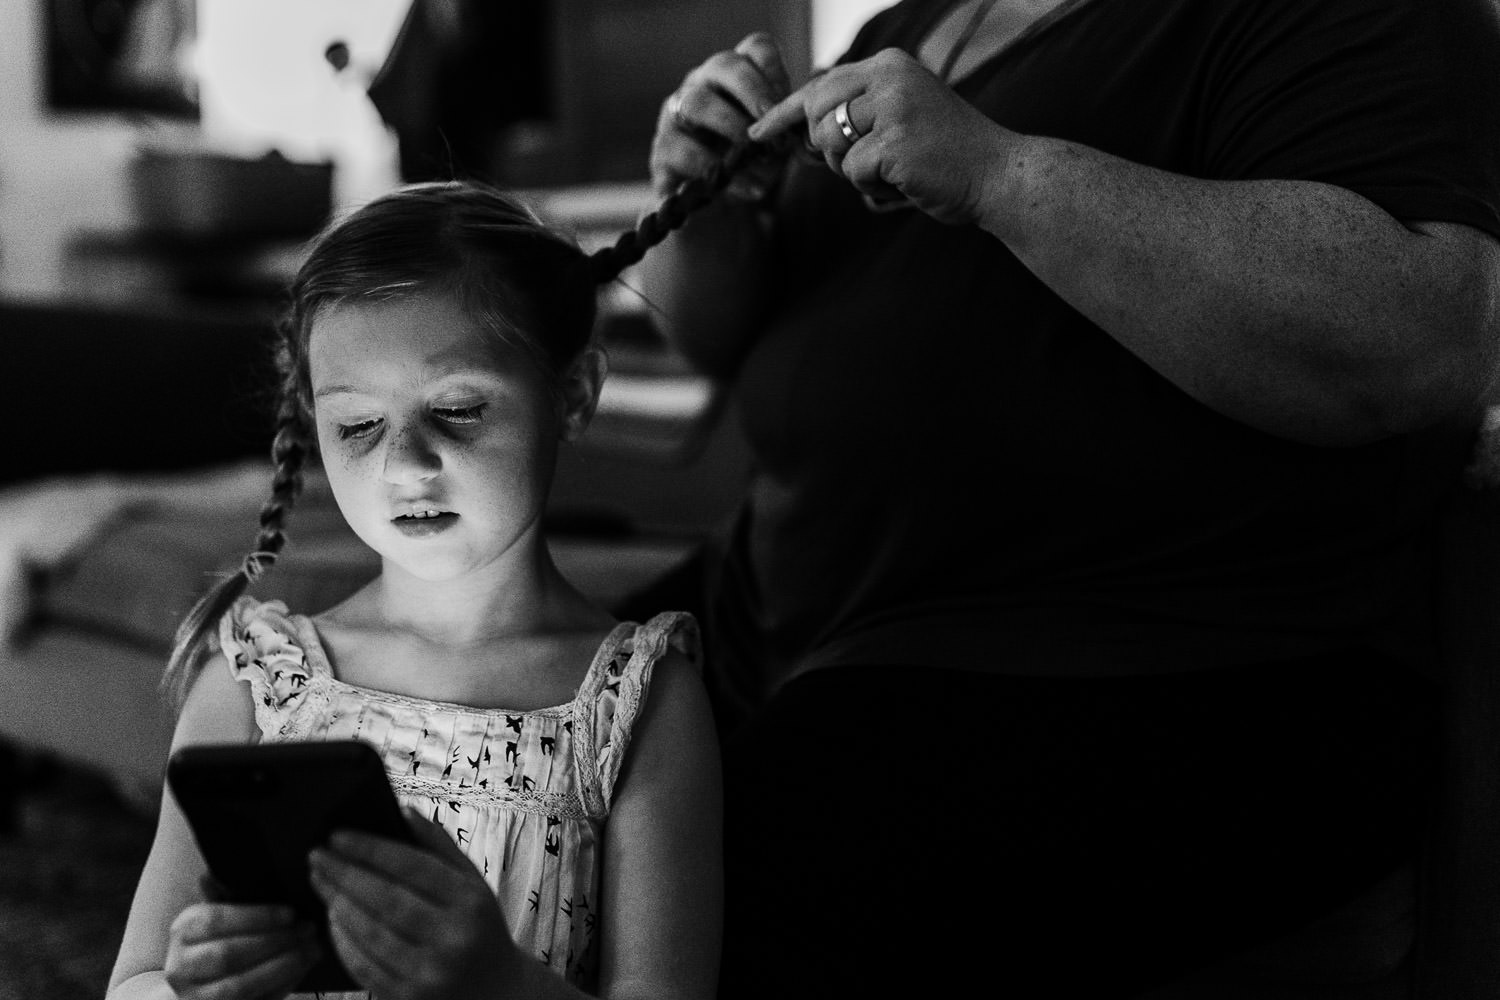 A little girl looks at a phone screen while getting her hair braided.